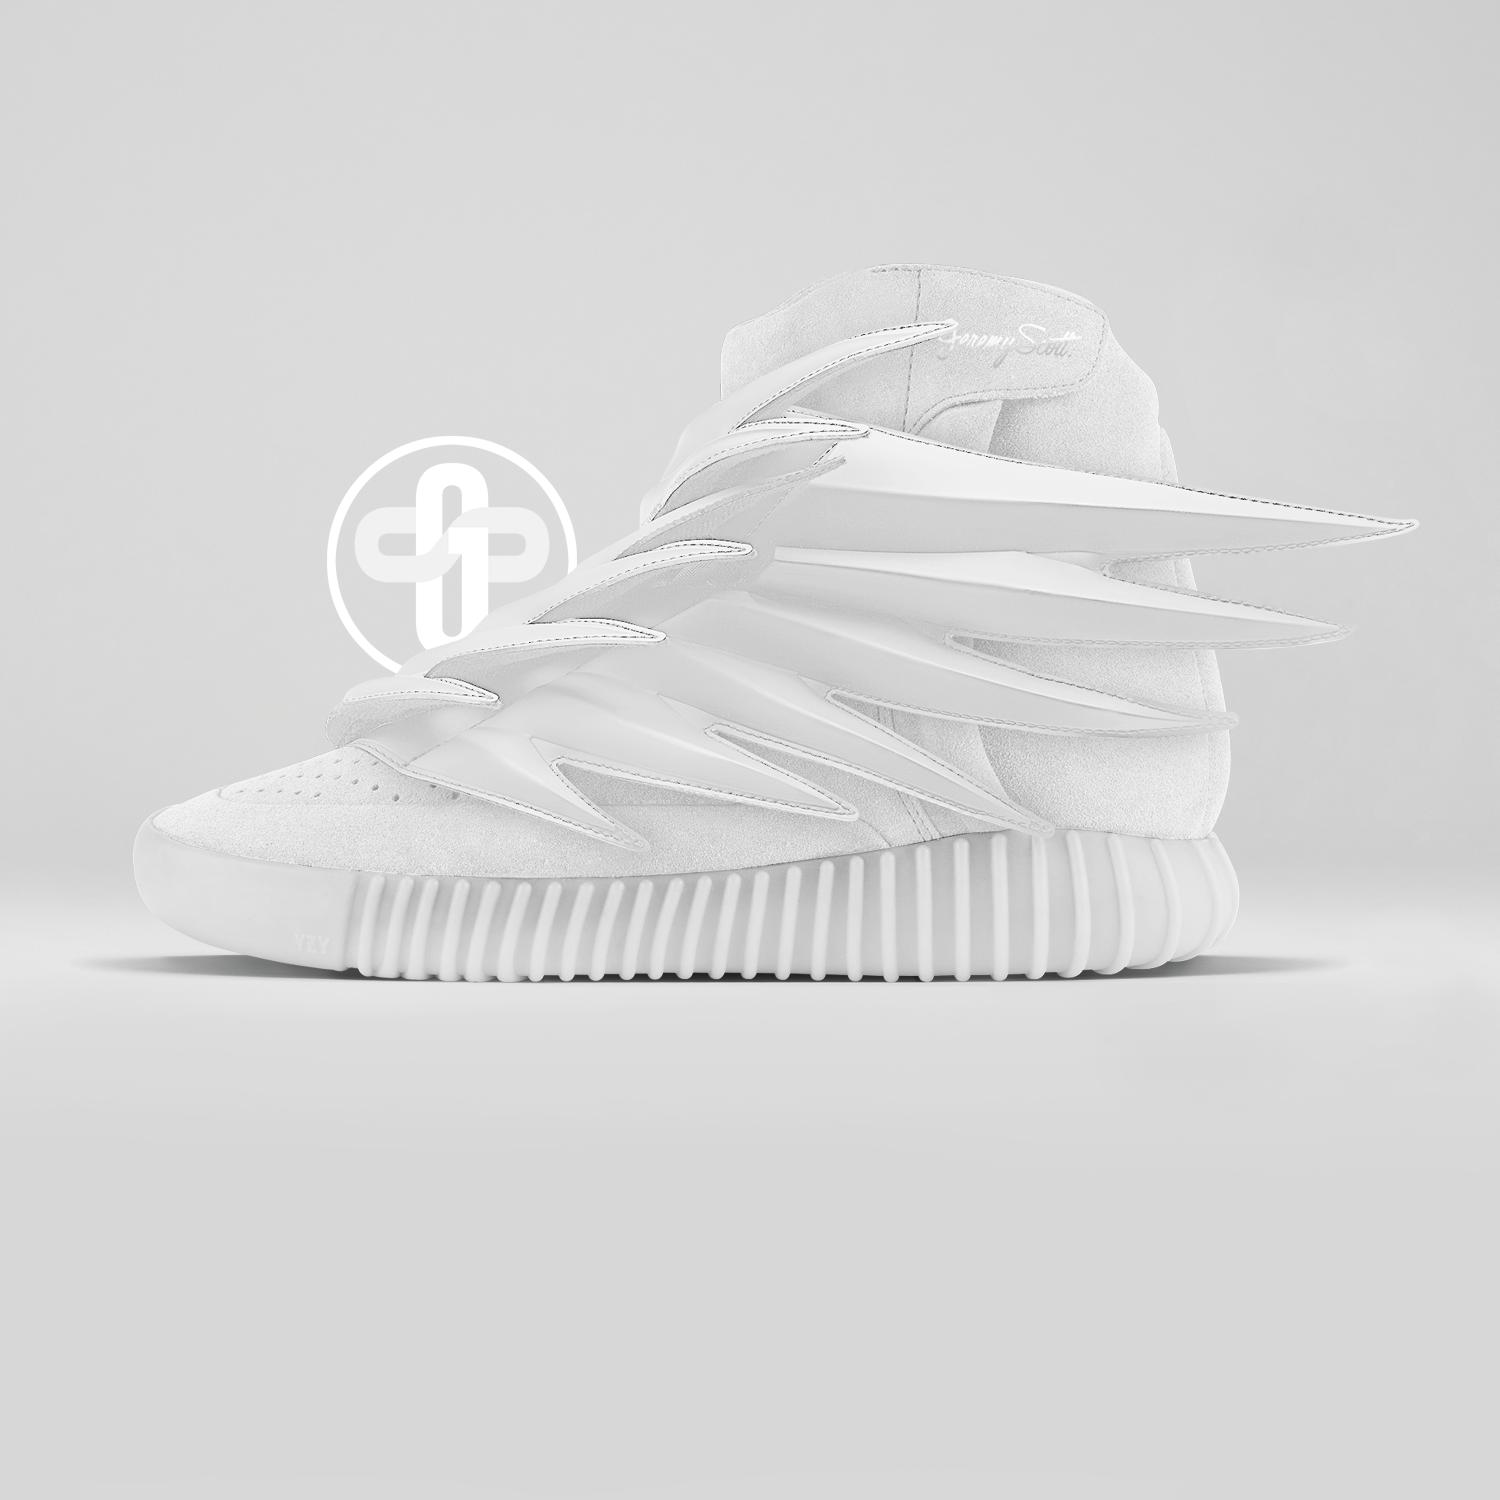 Jeremy Scott x Adidas Yeezy Boost 750 White Wings http://feedproxy.google